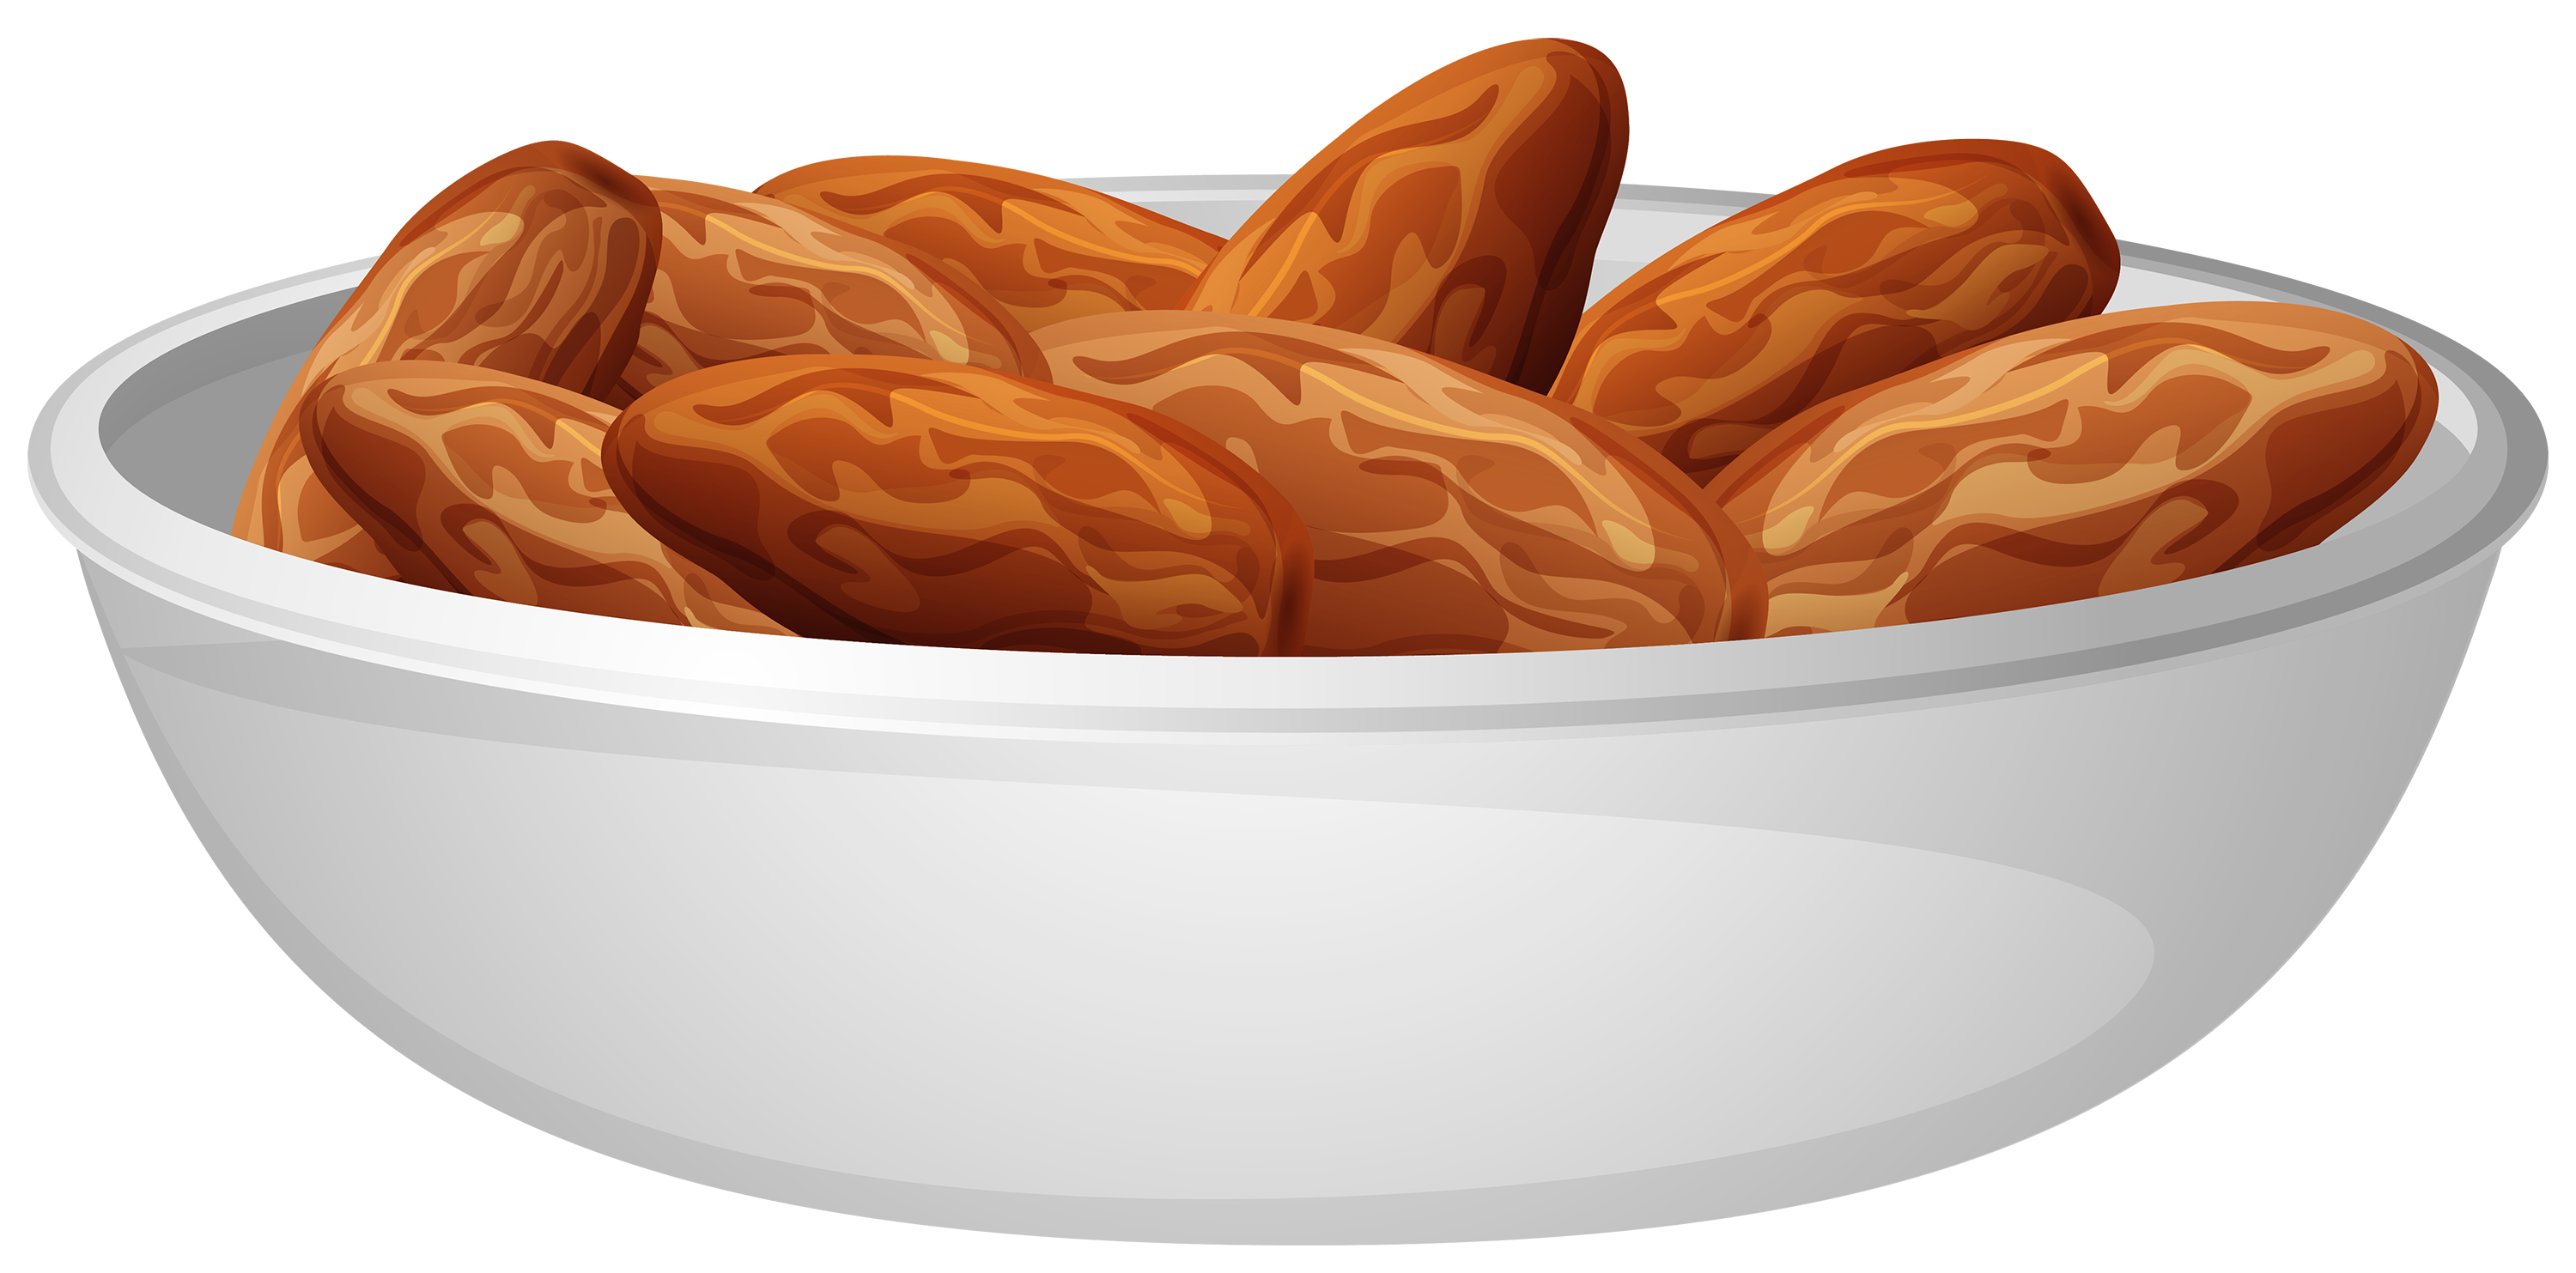 Food clipart meat. Dish with png best